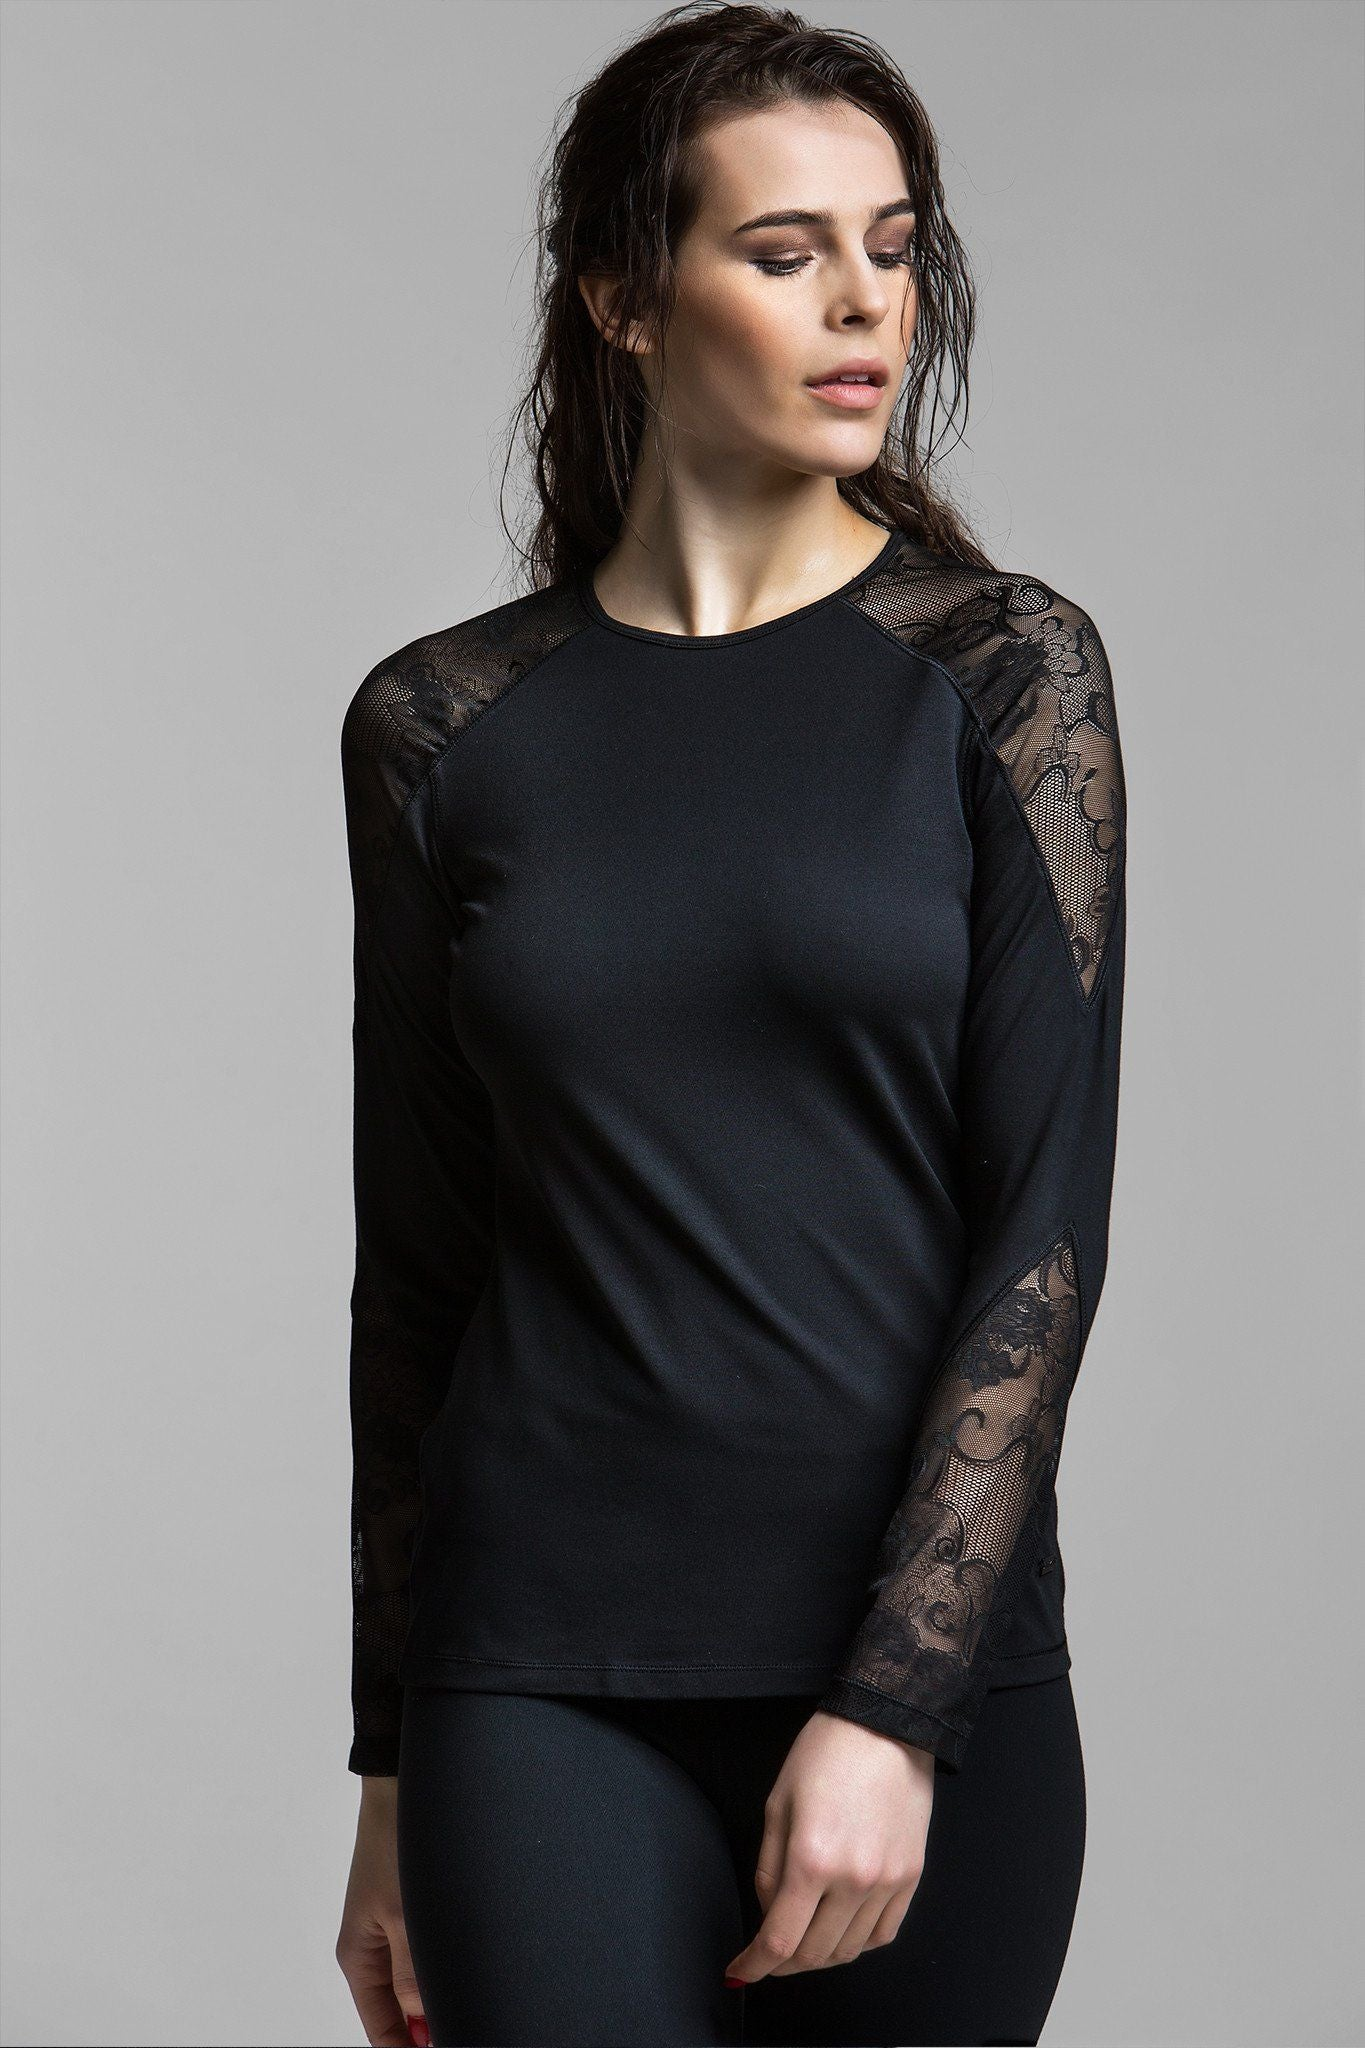 Desdemona Long Sleeve Training Top